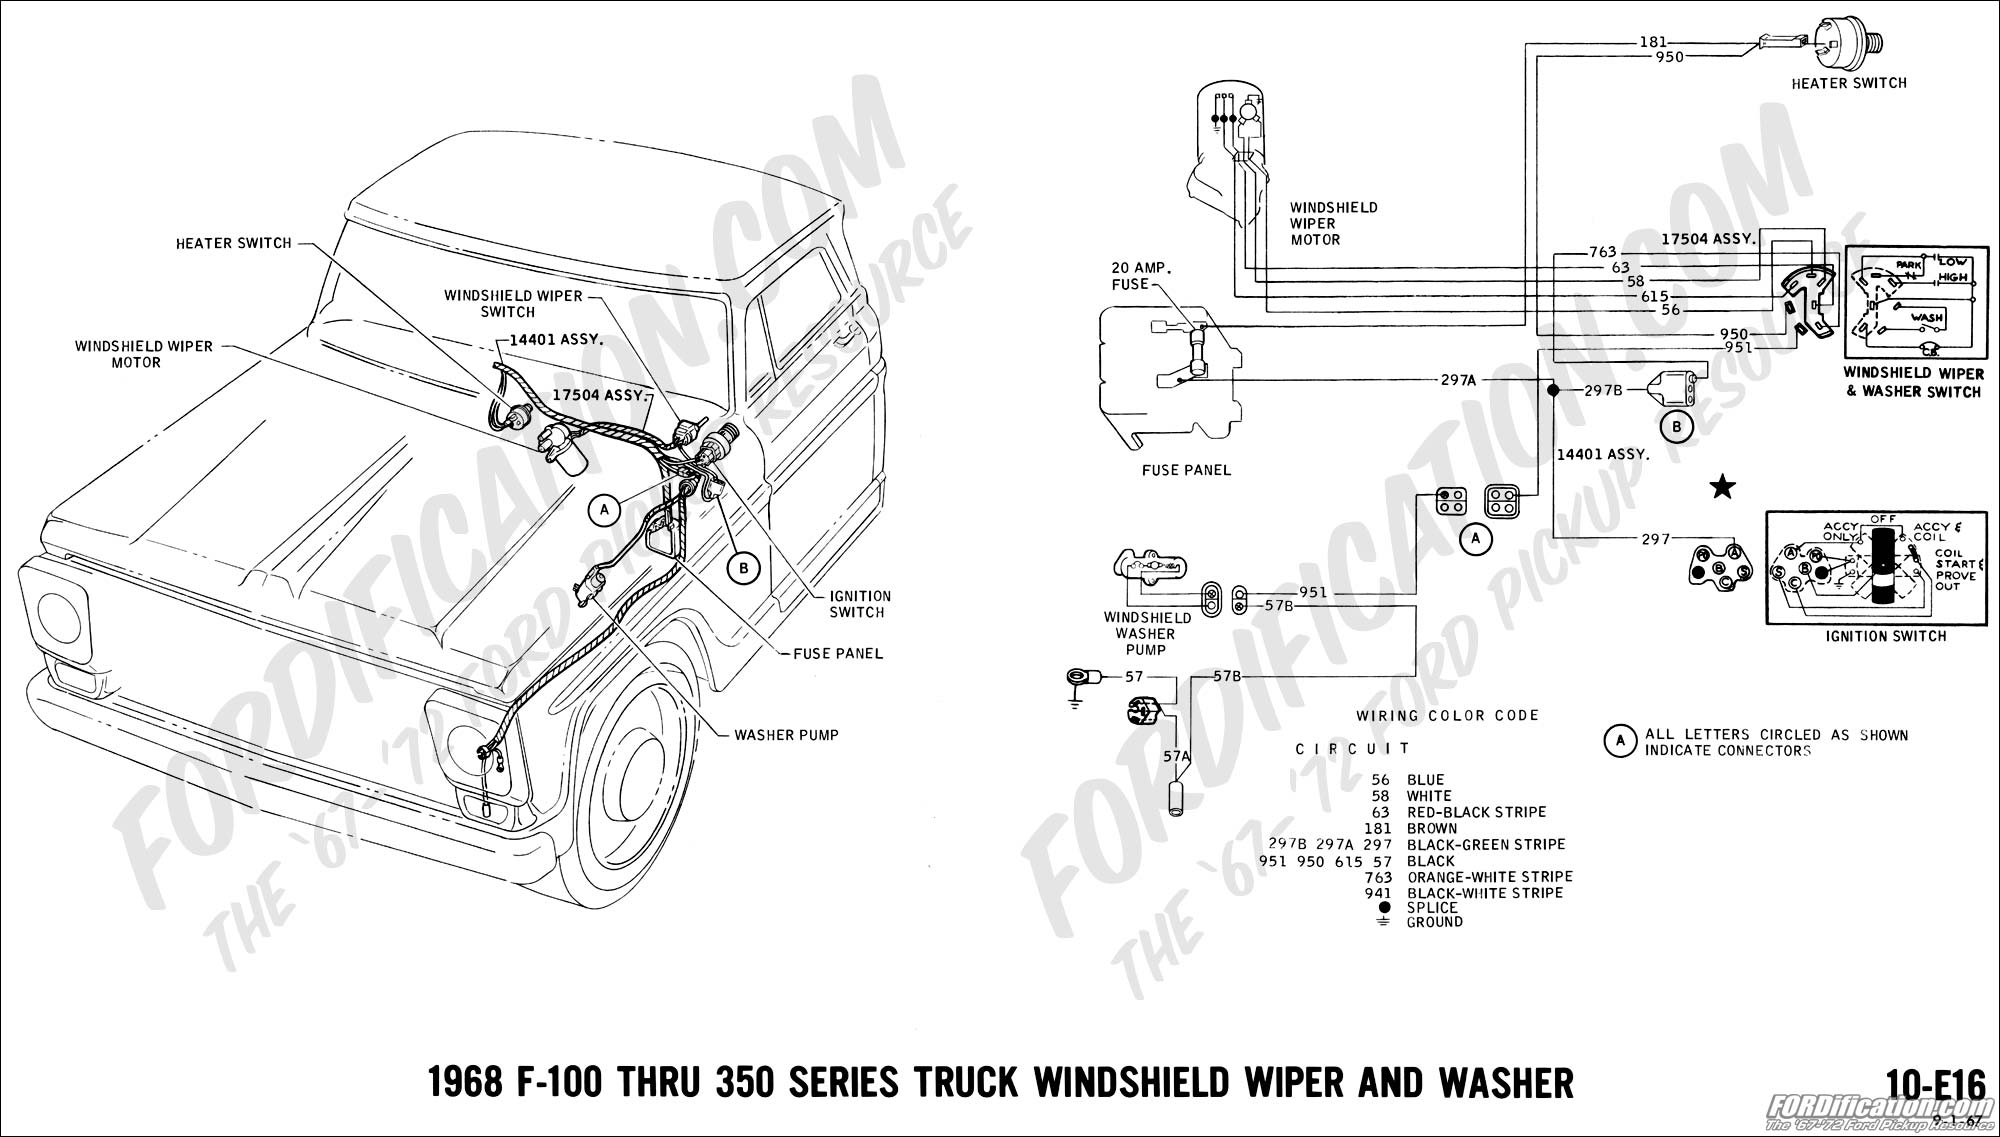 2012 F250 Fuse Box Wiring Library 2013 Chevy Silverado Diagram Ford Truck Technical Drawings And Schematics Section H Rh Fordification Com 2002 Panel